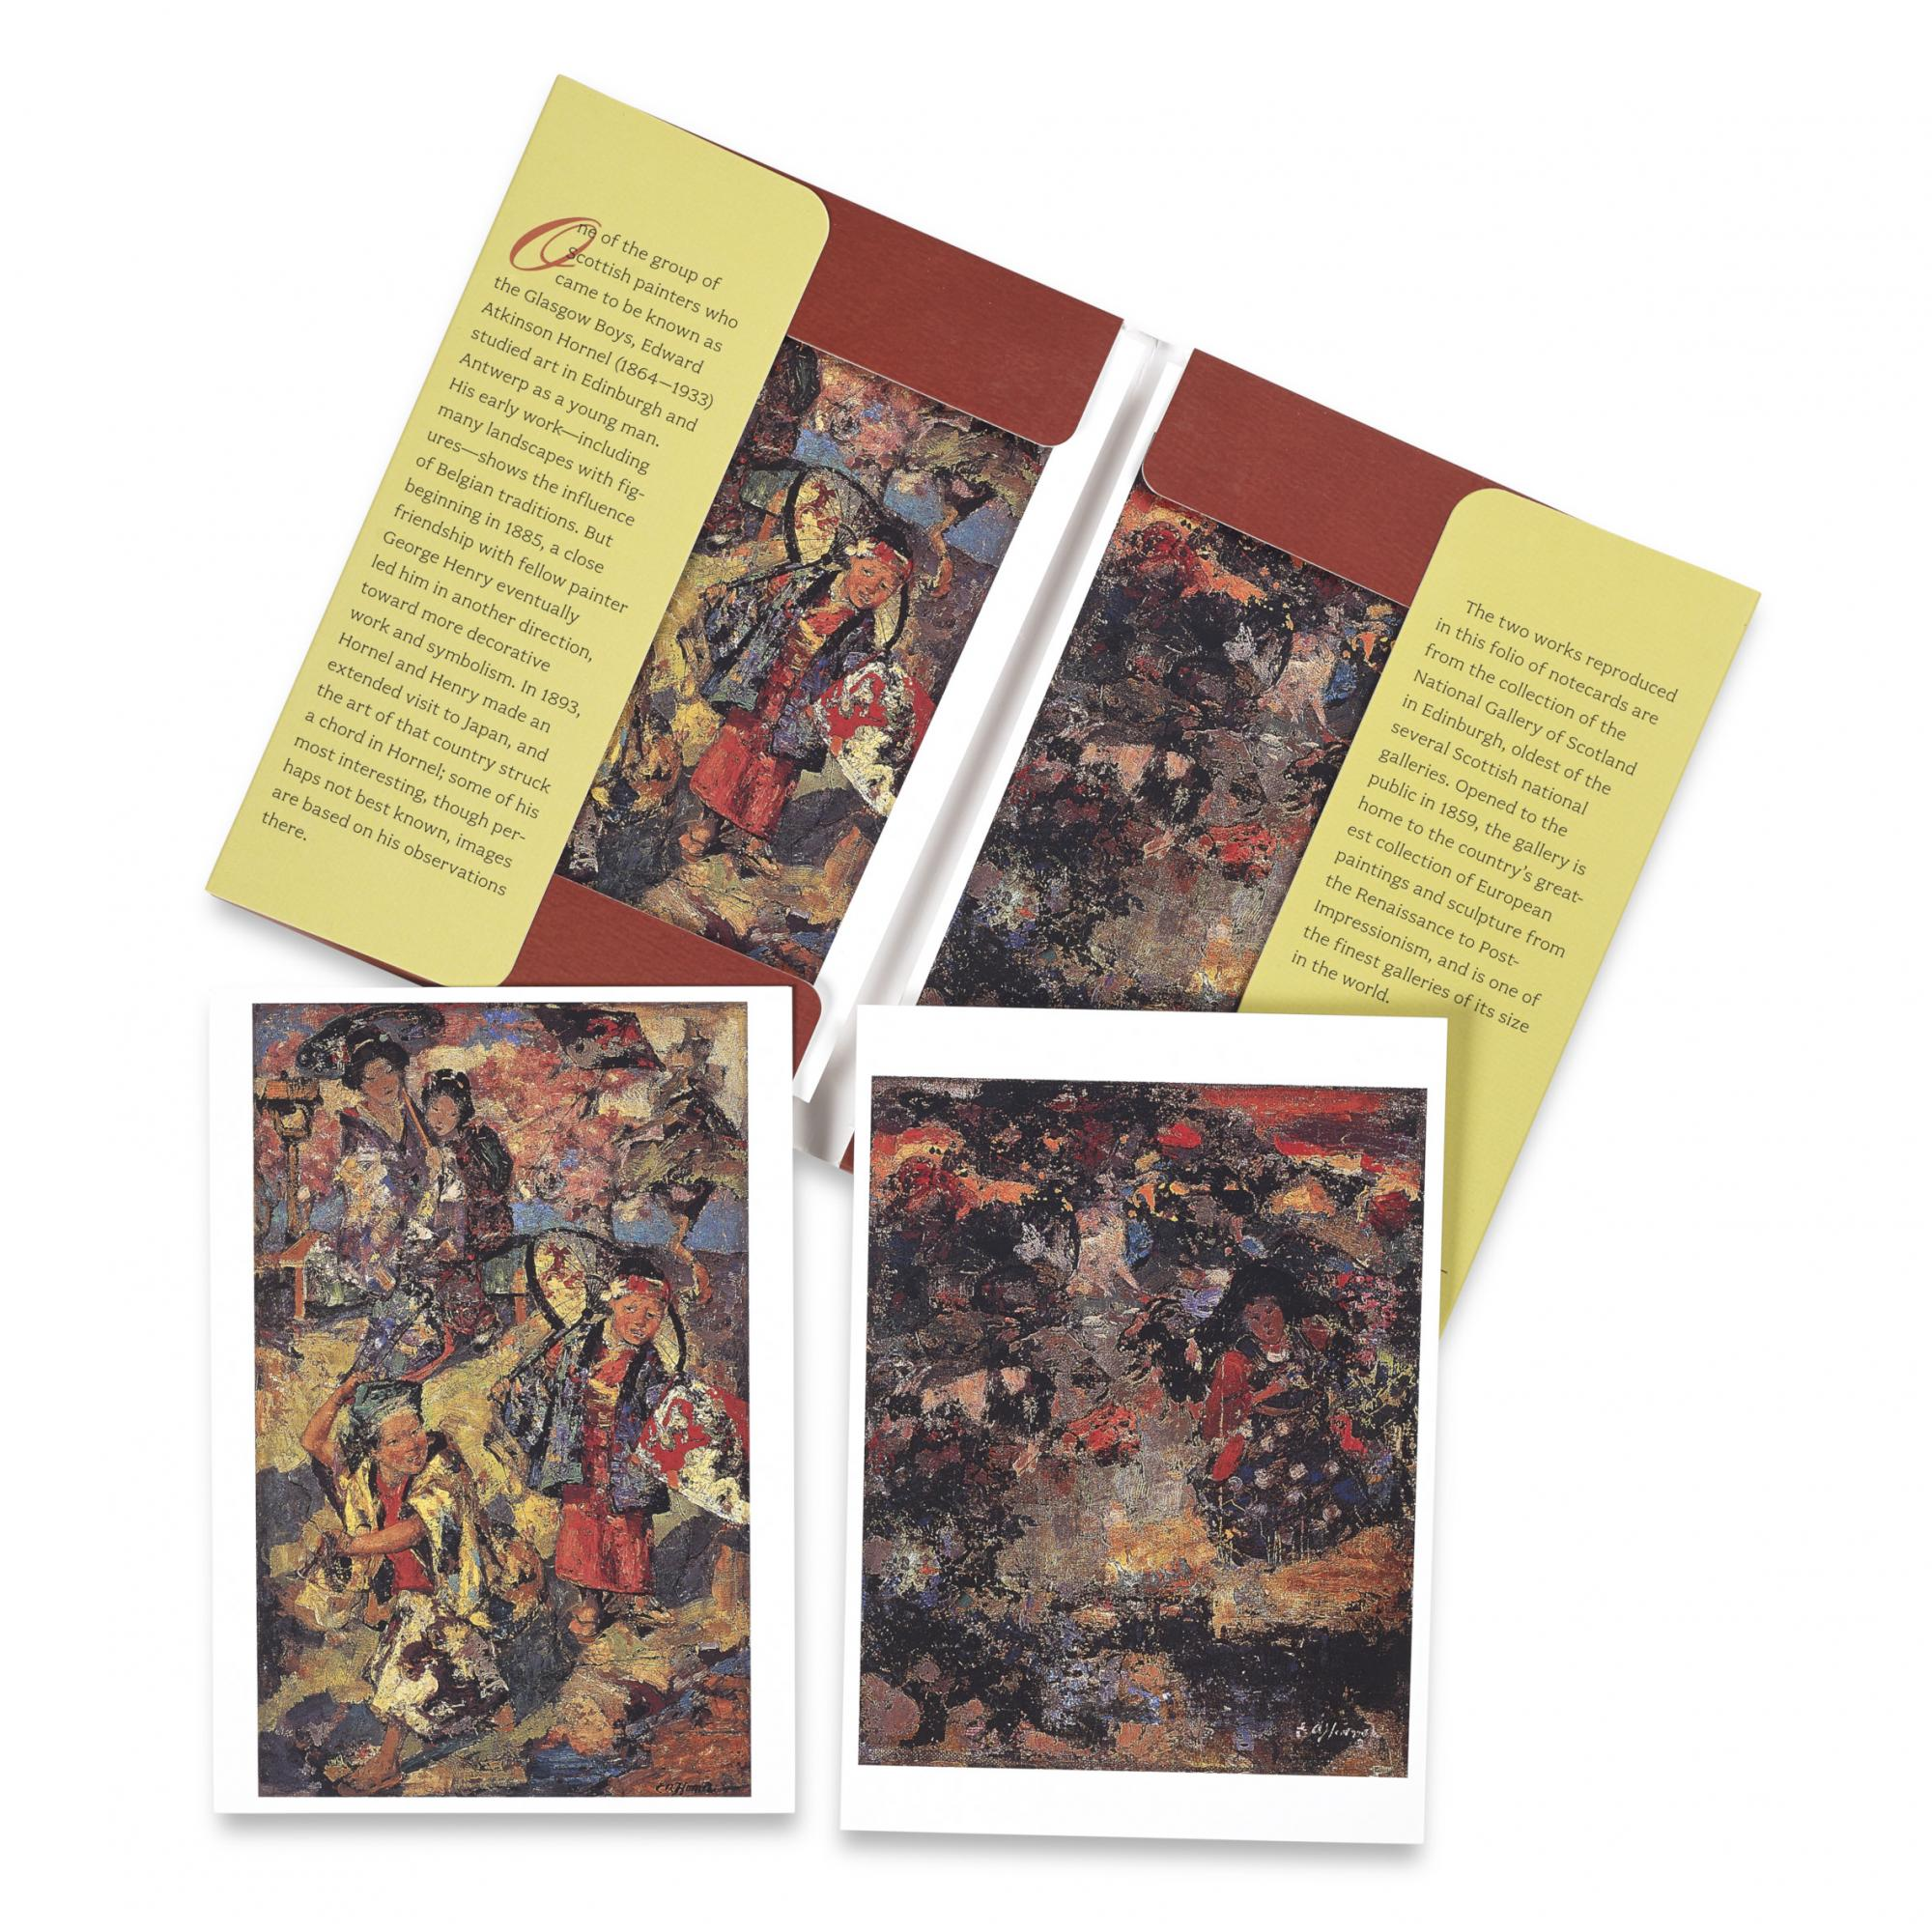 Edward Atkinson Hornel notecard set (10 cards)